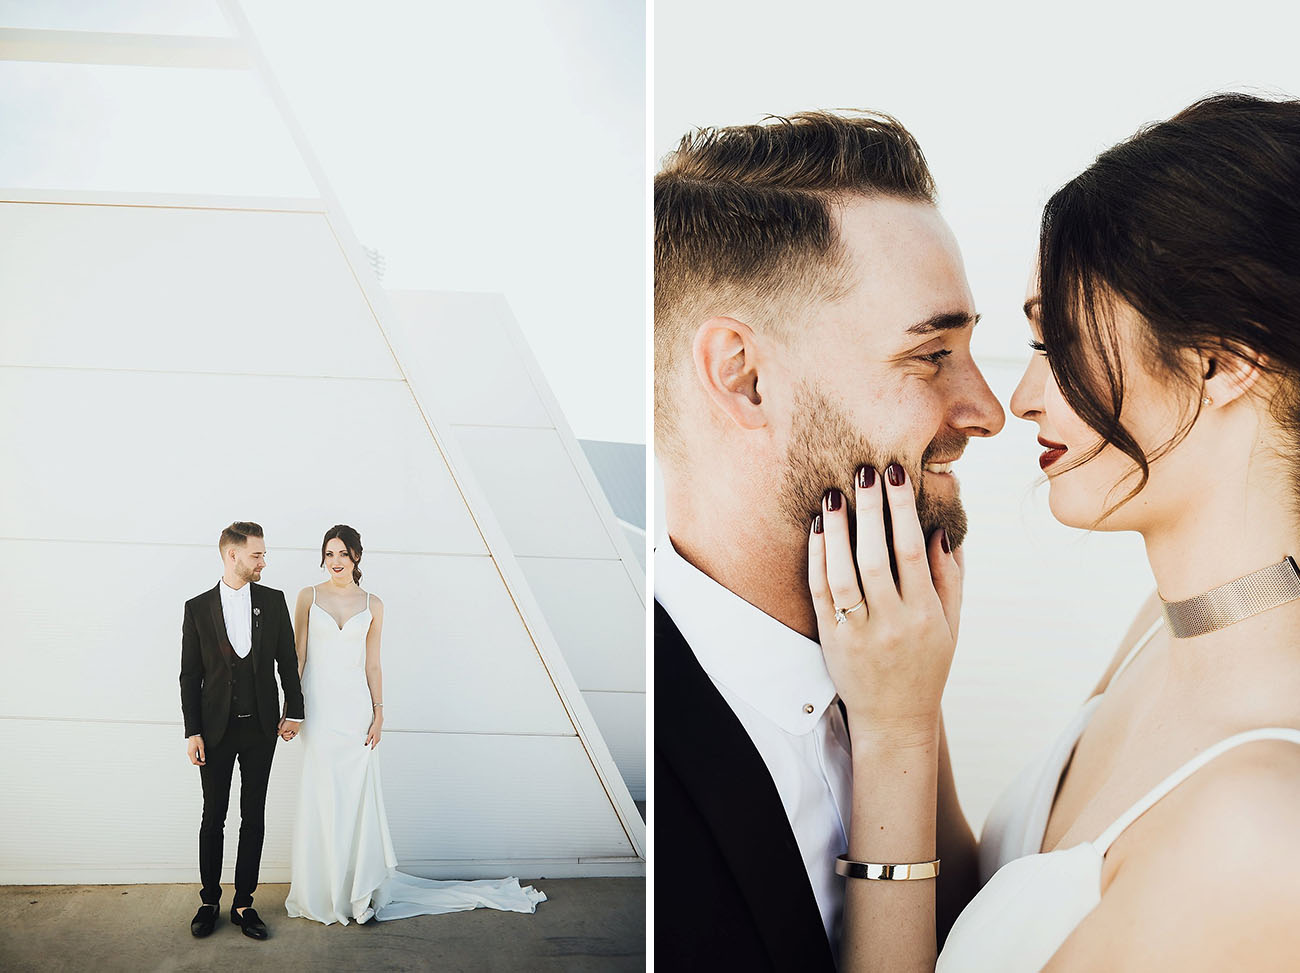 Stylish Minimalistic Wedding